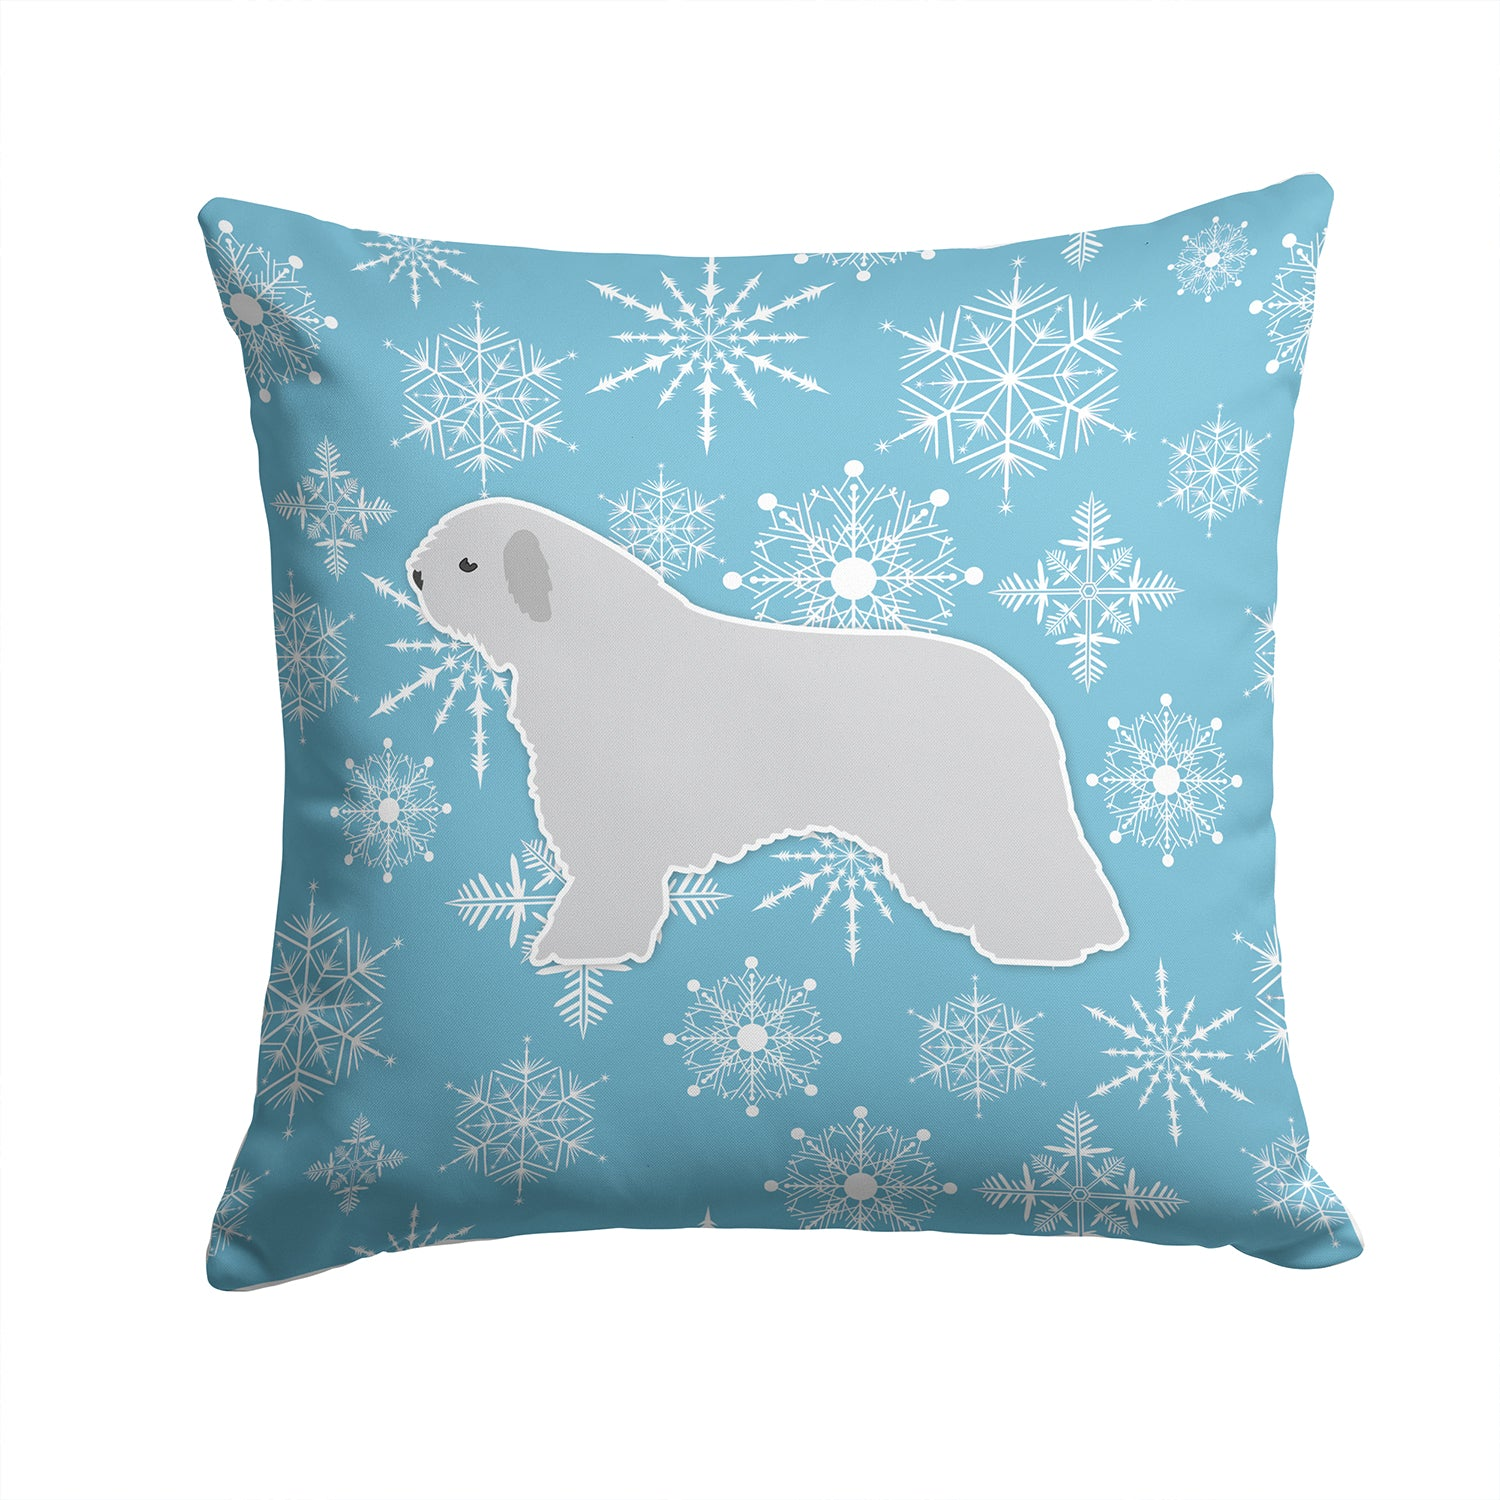 Winter Snowflake Spanish Water Dog Fabric Decorative Pillow BB3515PW1414 by Caroline's Treasures